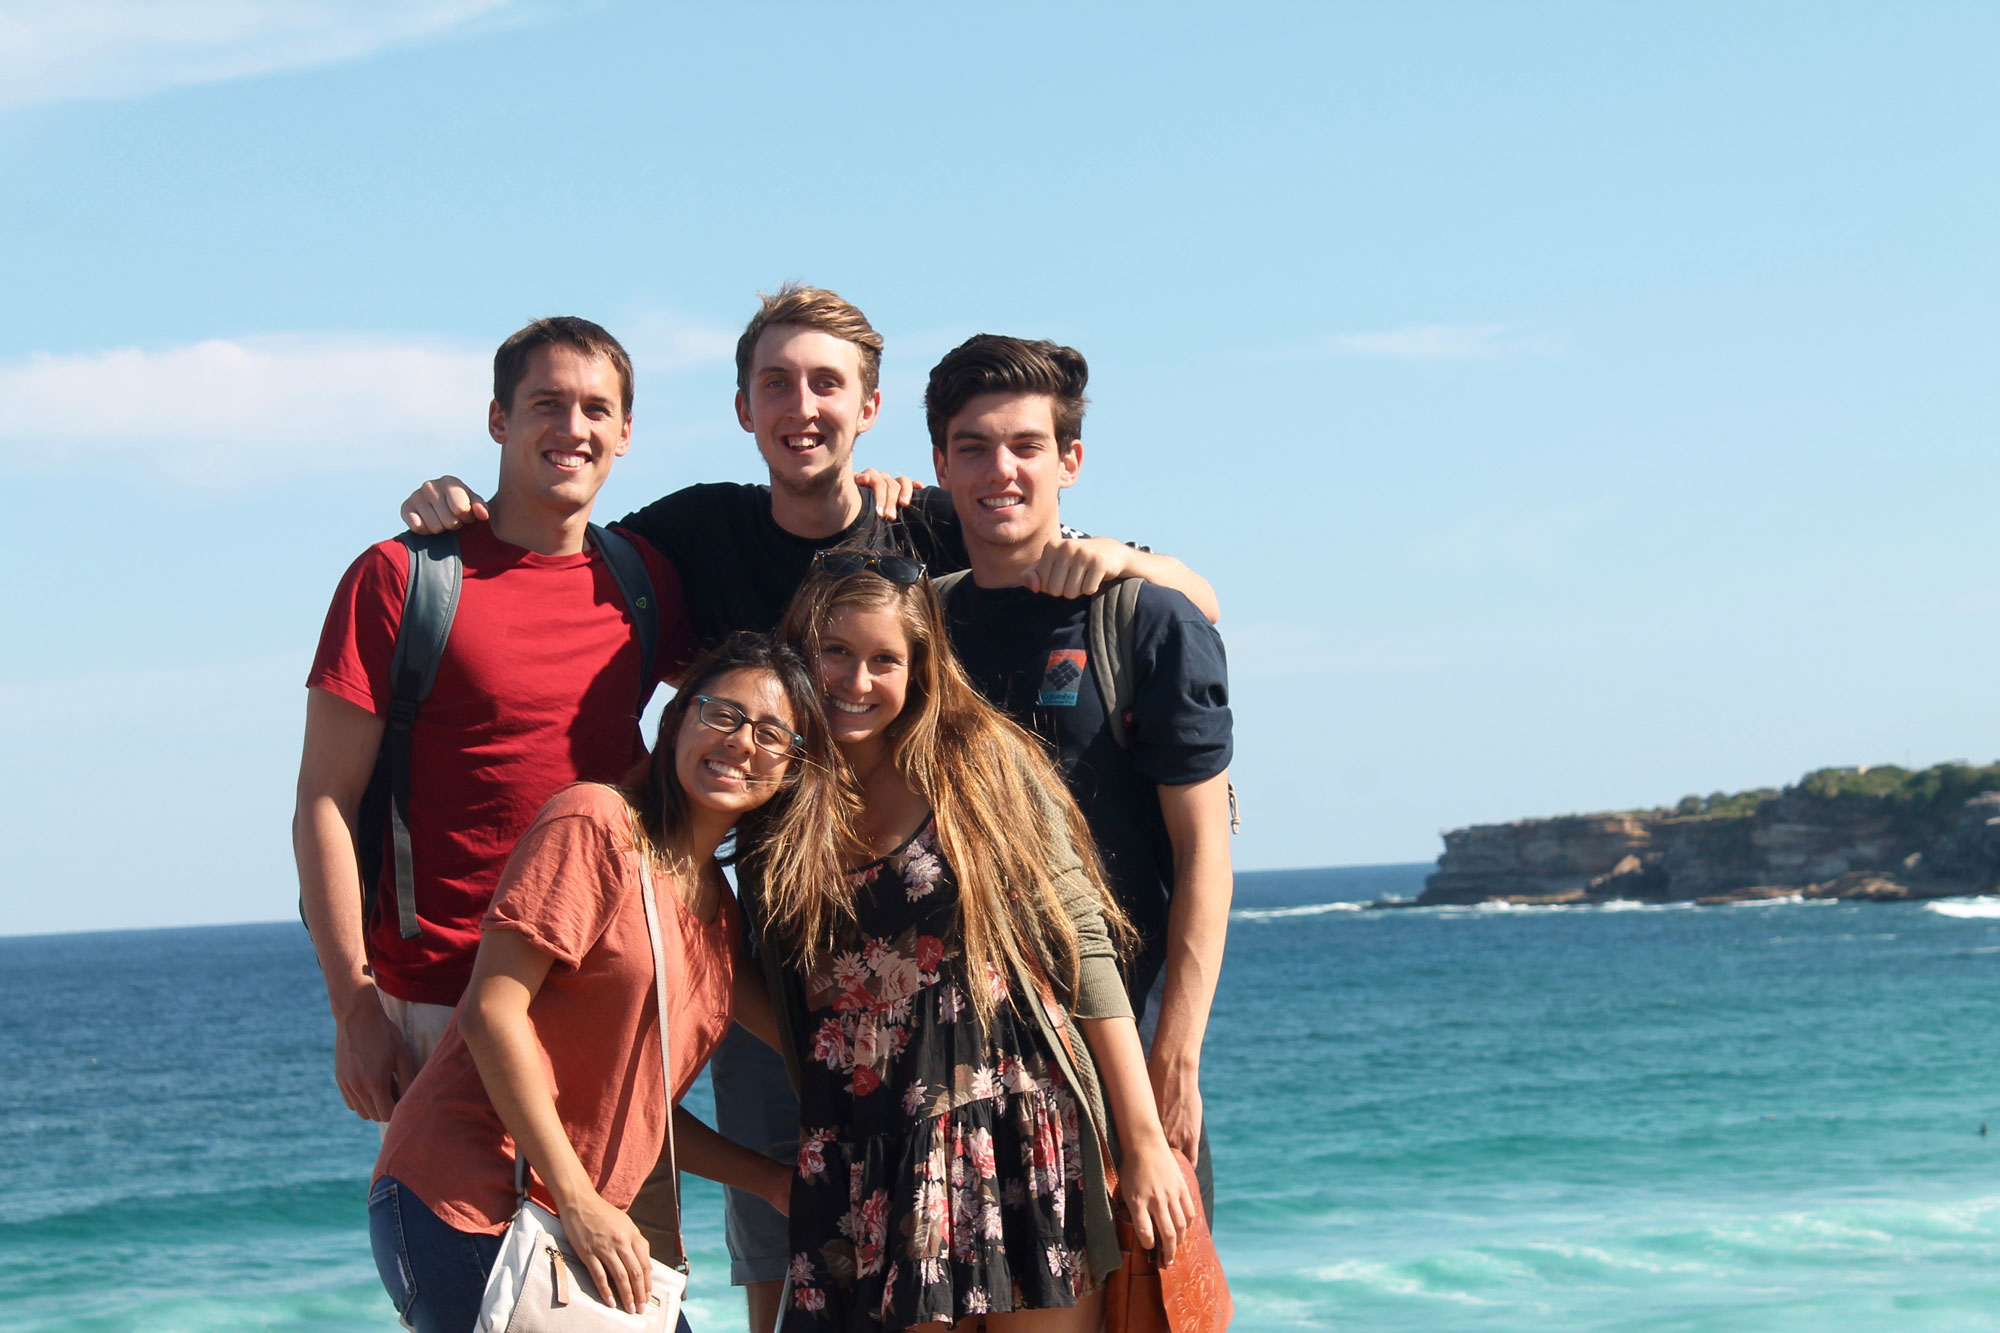 Group of students in front of the ocean